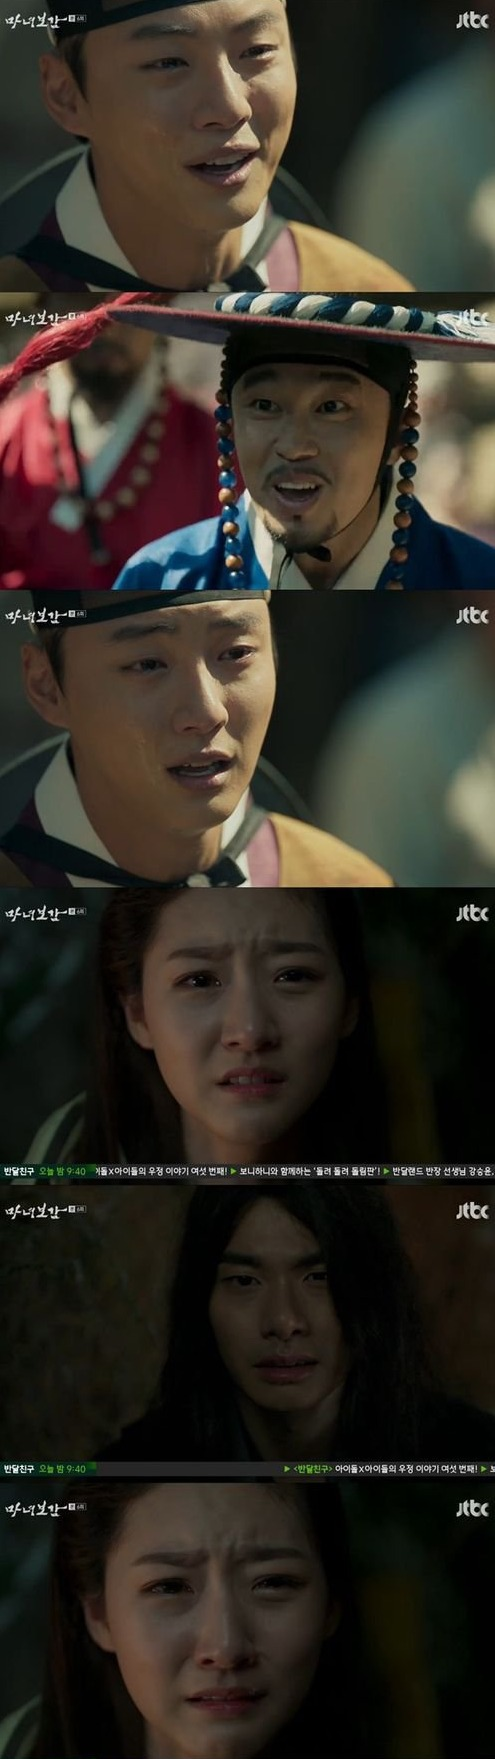 [Spoiler] Added episodes 5 and 6 captures for the Korean